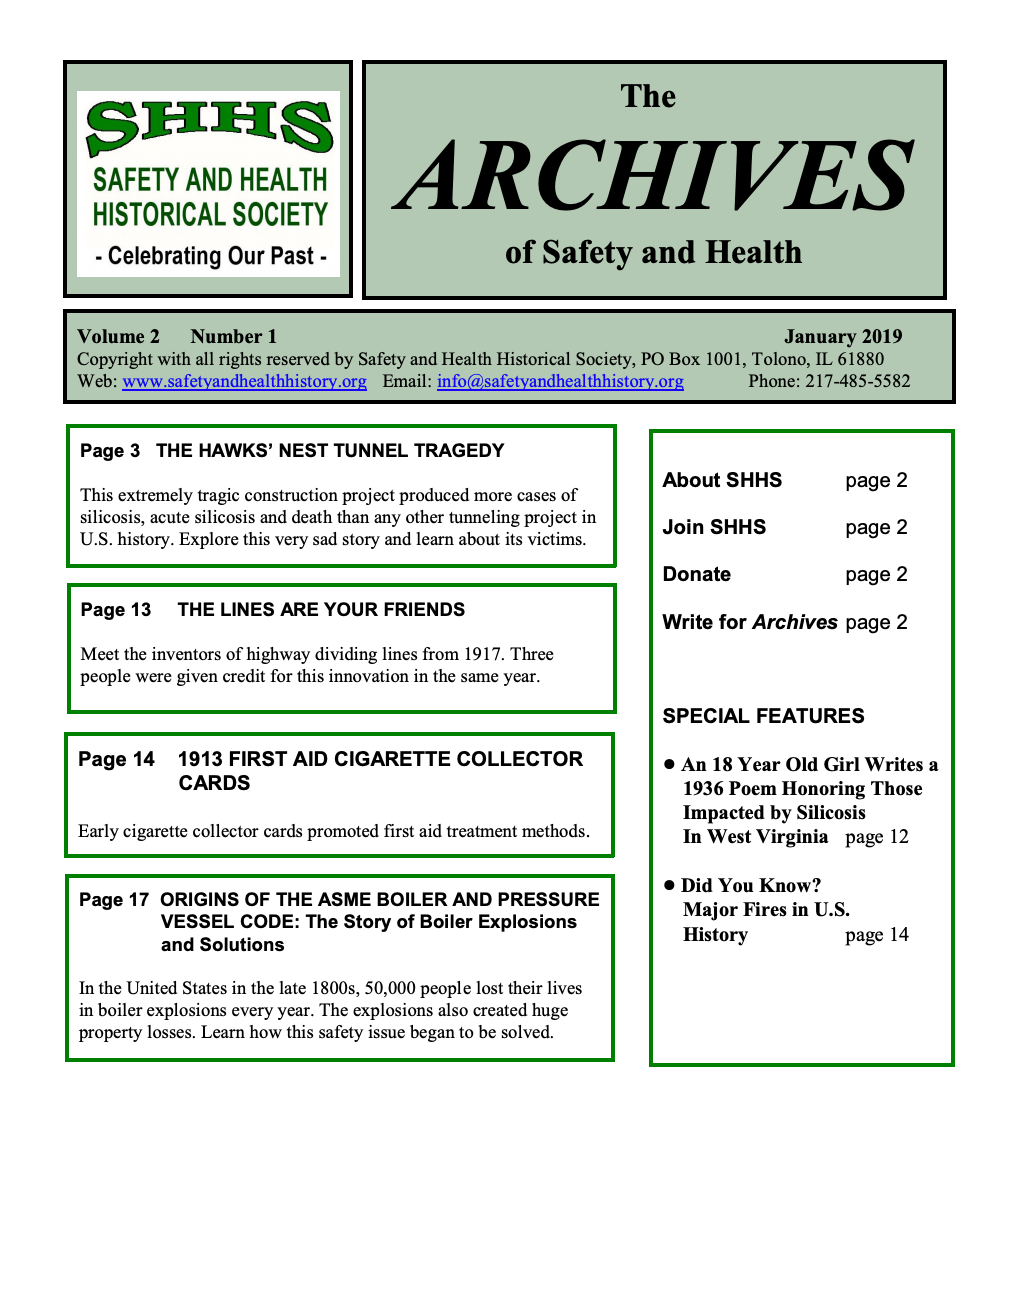 Volume 2 Number 1 - The Archives Of Safety And Health